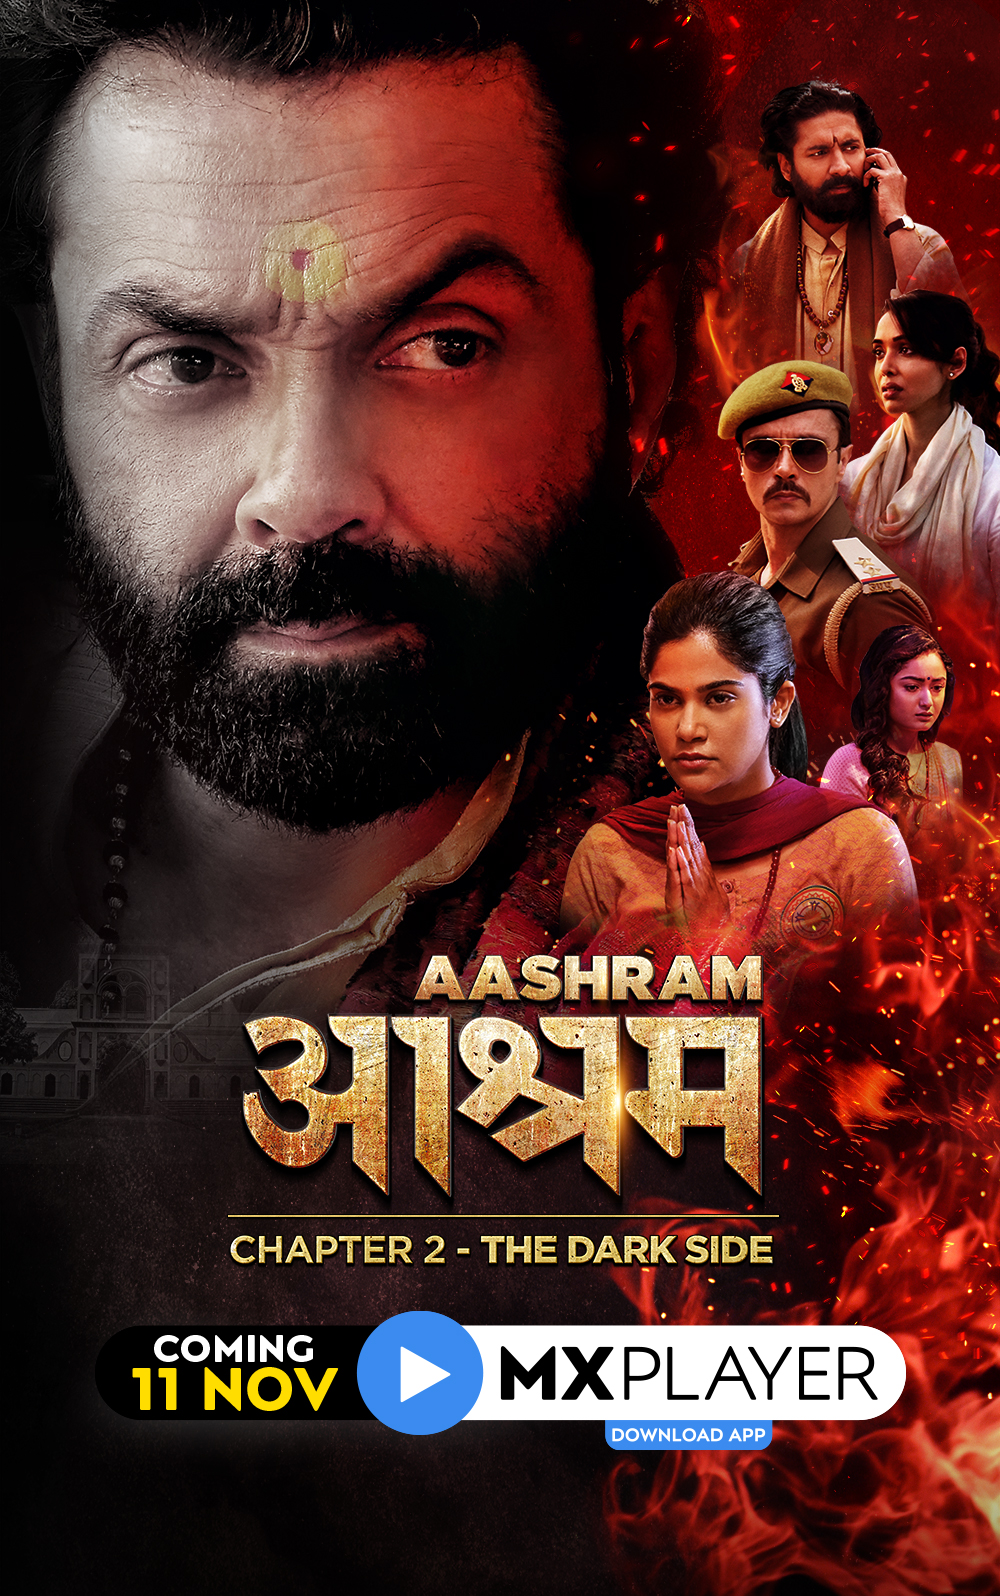 Aashram Chapter 2